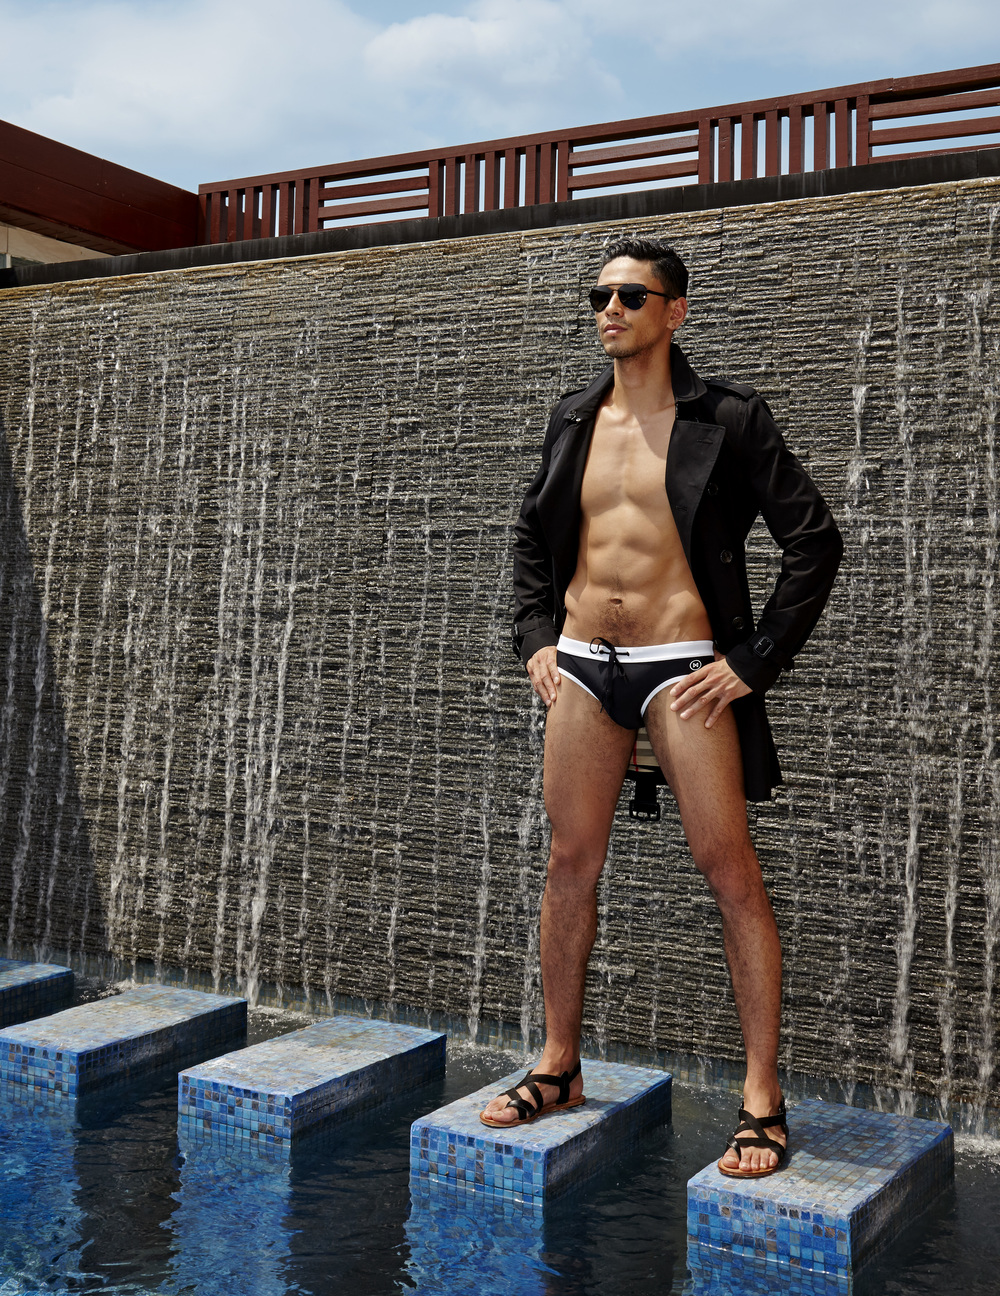 Male : Trench Coat : BURBERRY / sunglasses : PRADA / swimwear : NOXX